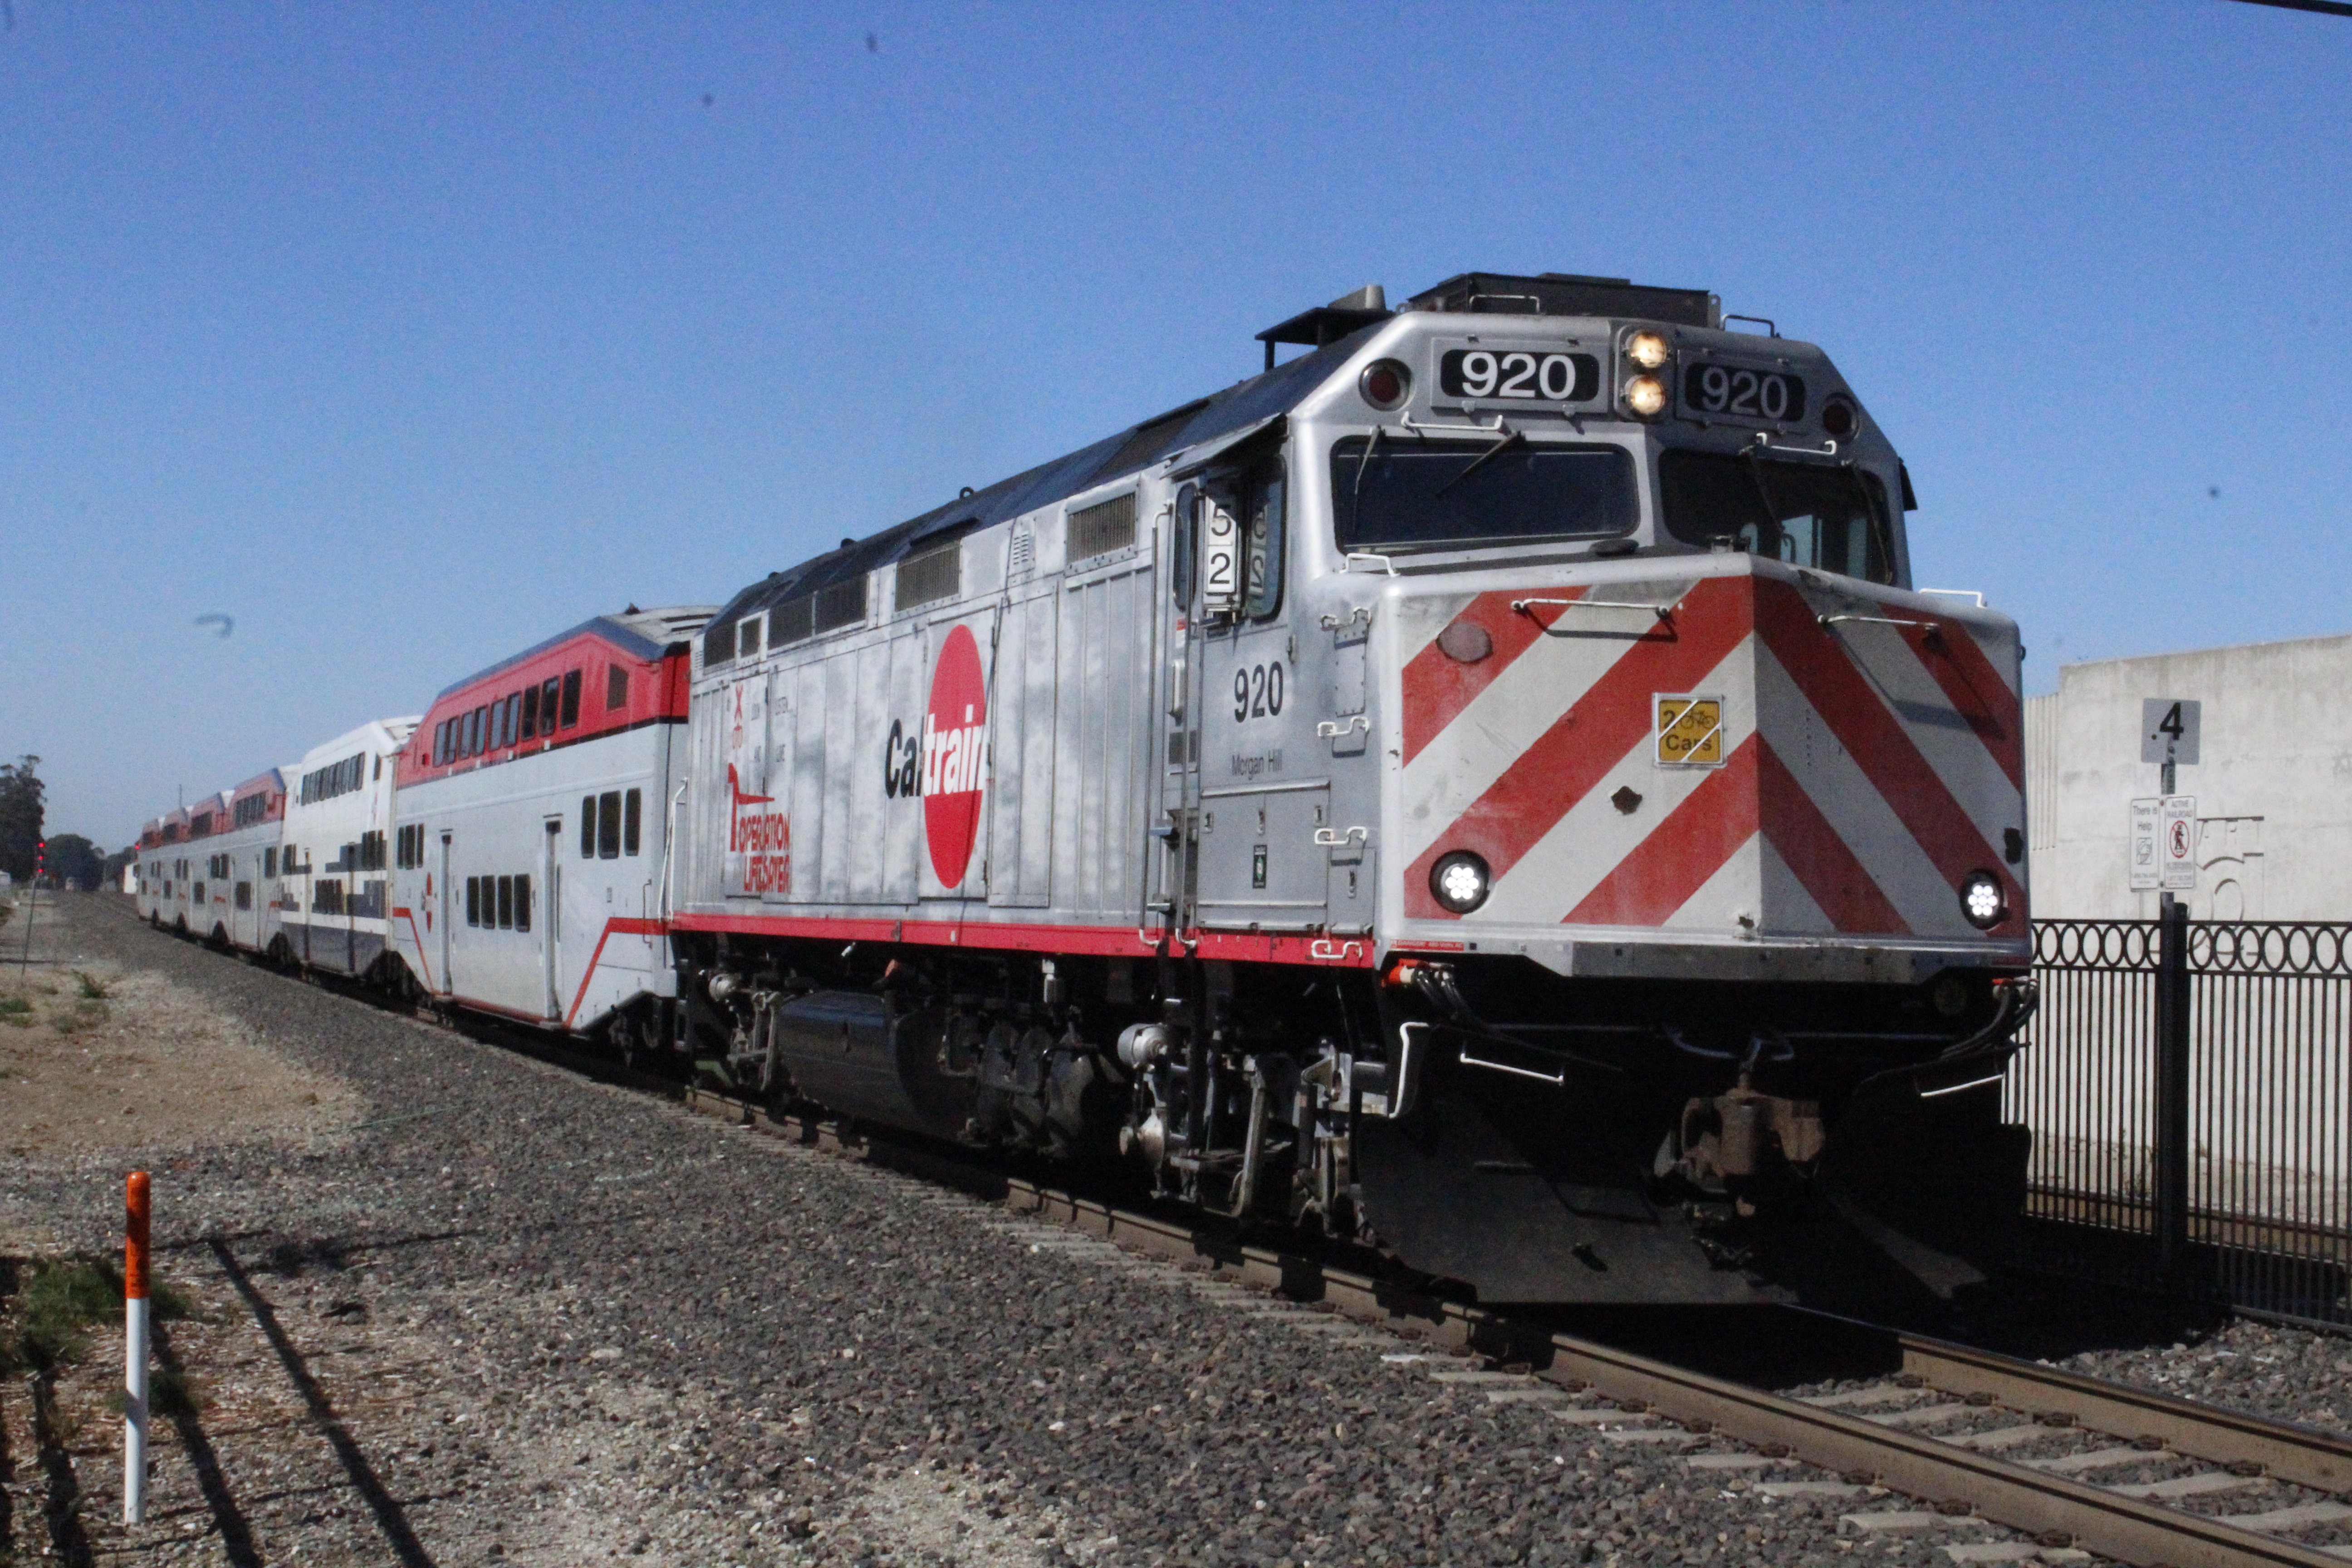 Caltrain unit 920, Morgan Hill, when it was co-branded as the Operation Lifesaver train (now with unit 916)